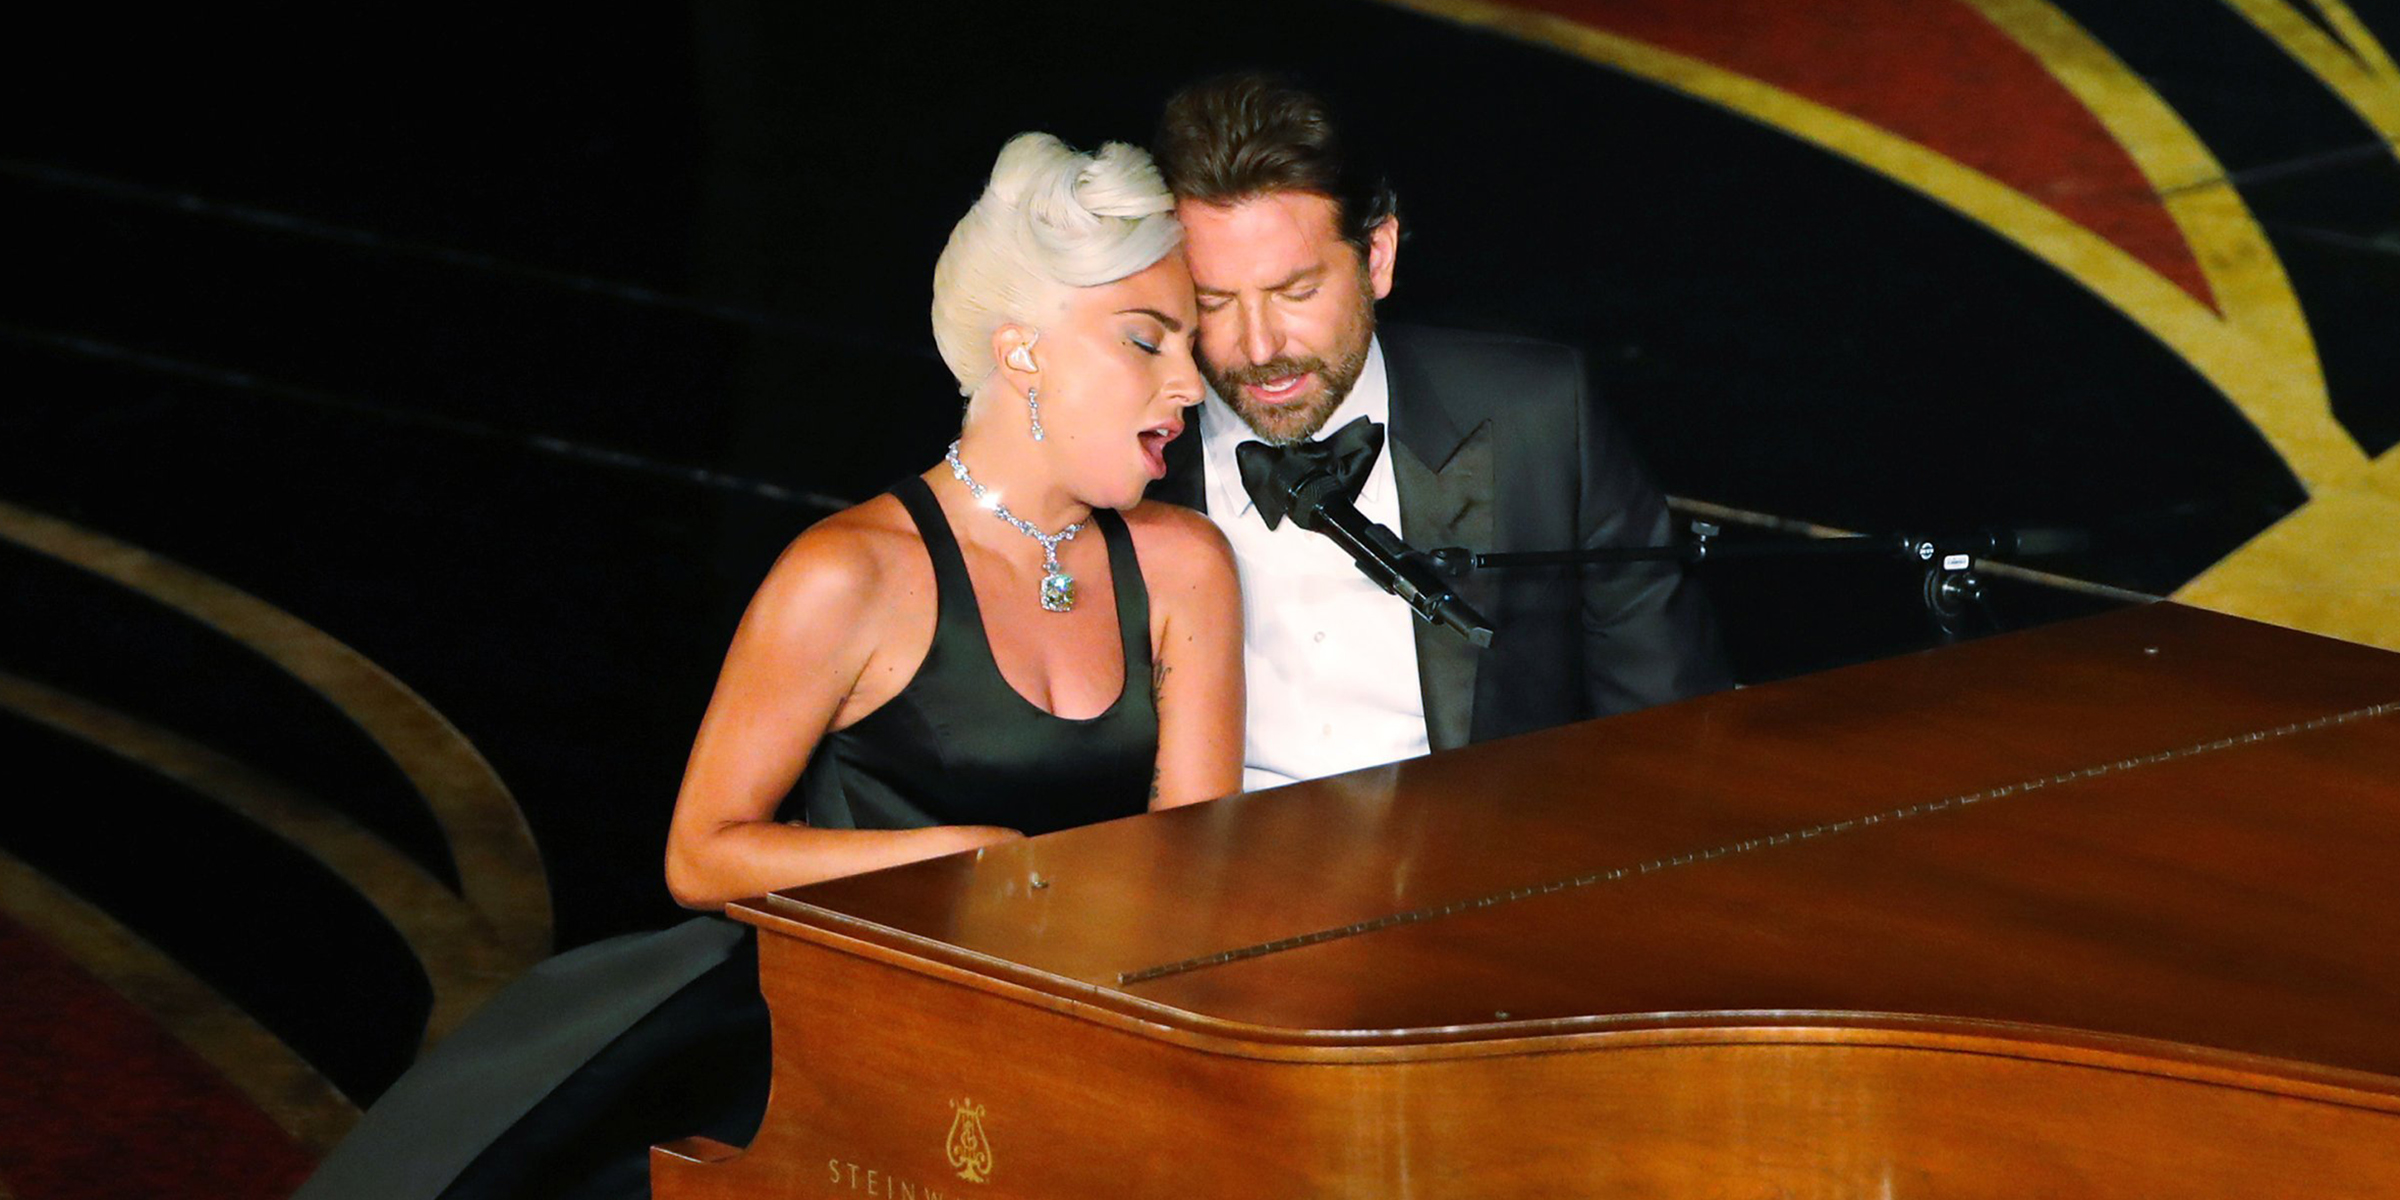 'A Star Is Born' reunion? Bradley Cooper wants to perform with Lady Gaga again